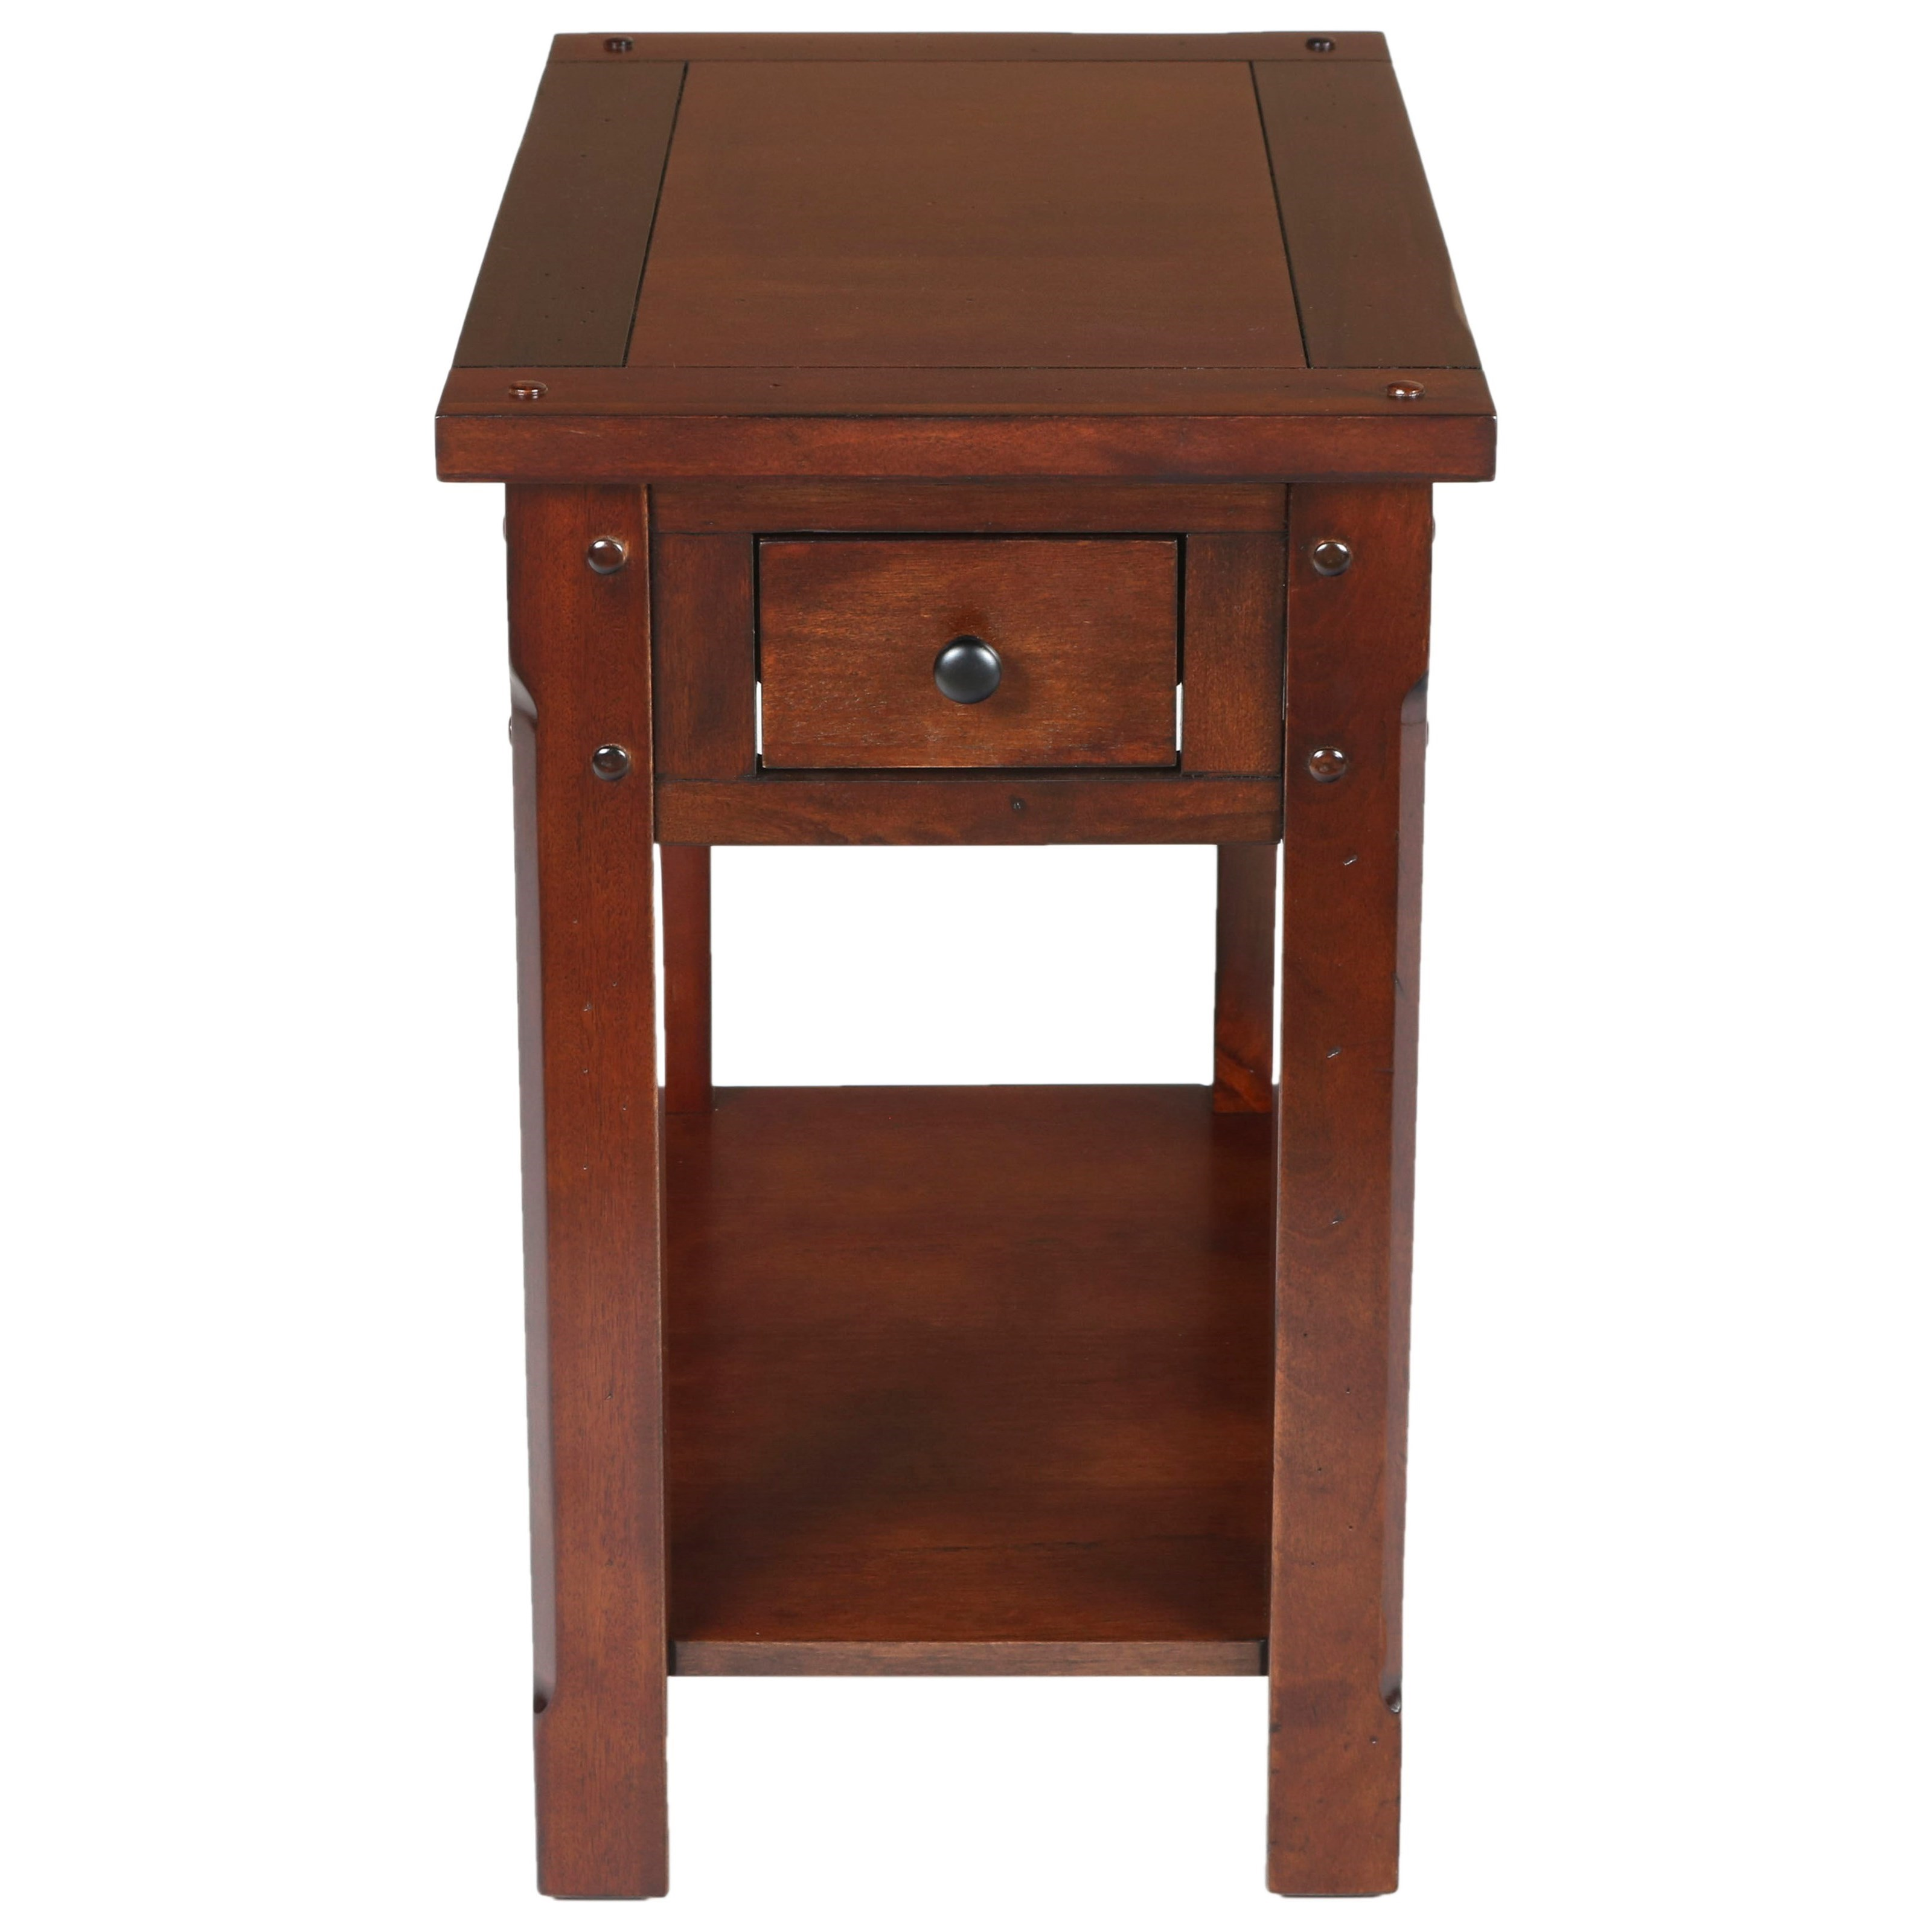 Ashley Furniture Horseheads Ny: New Classic Corsica Chairside Table With Drawer And Shelf